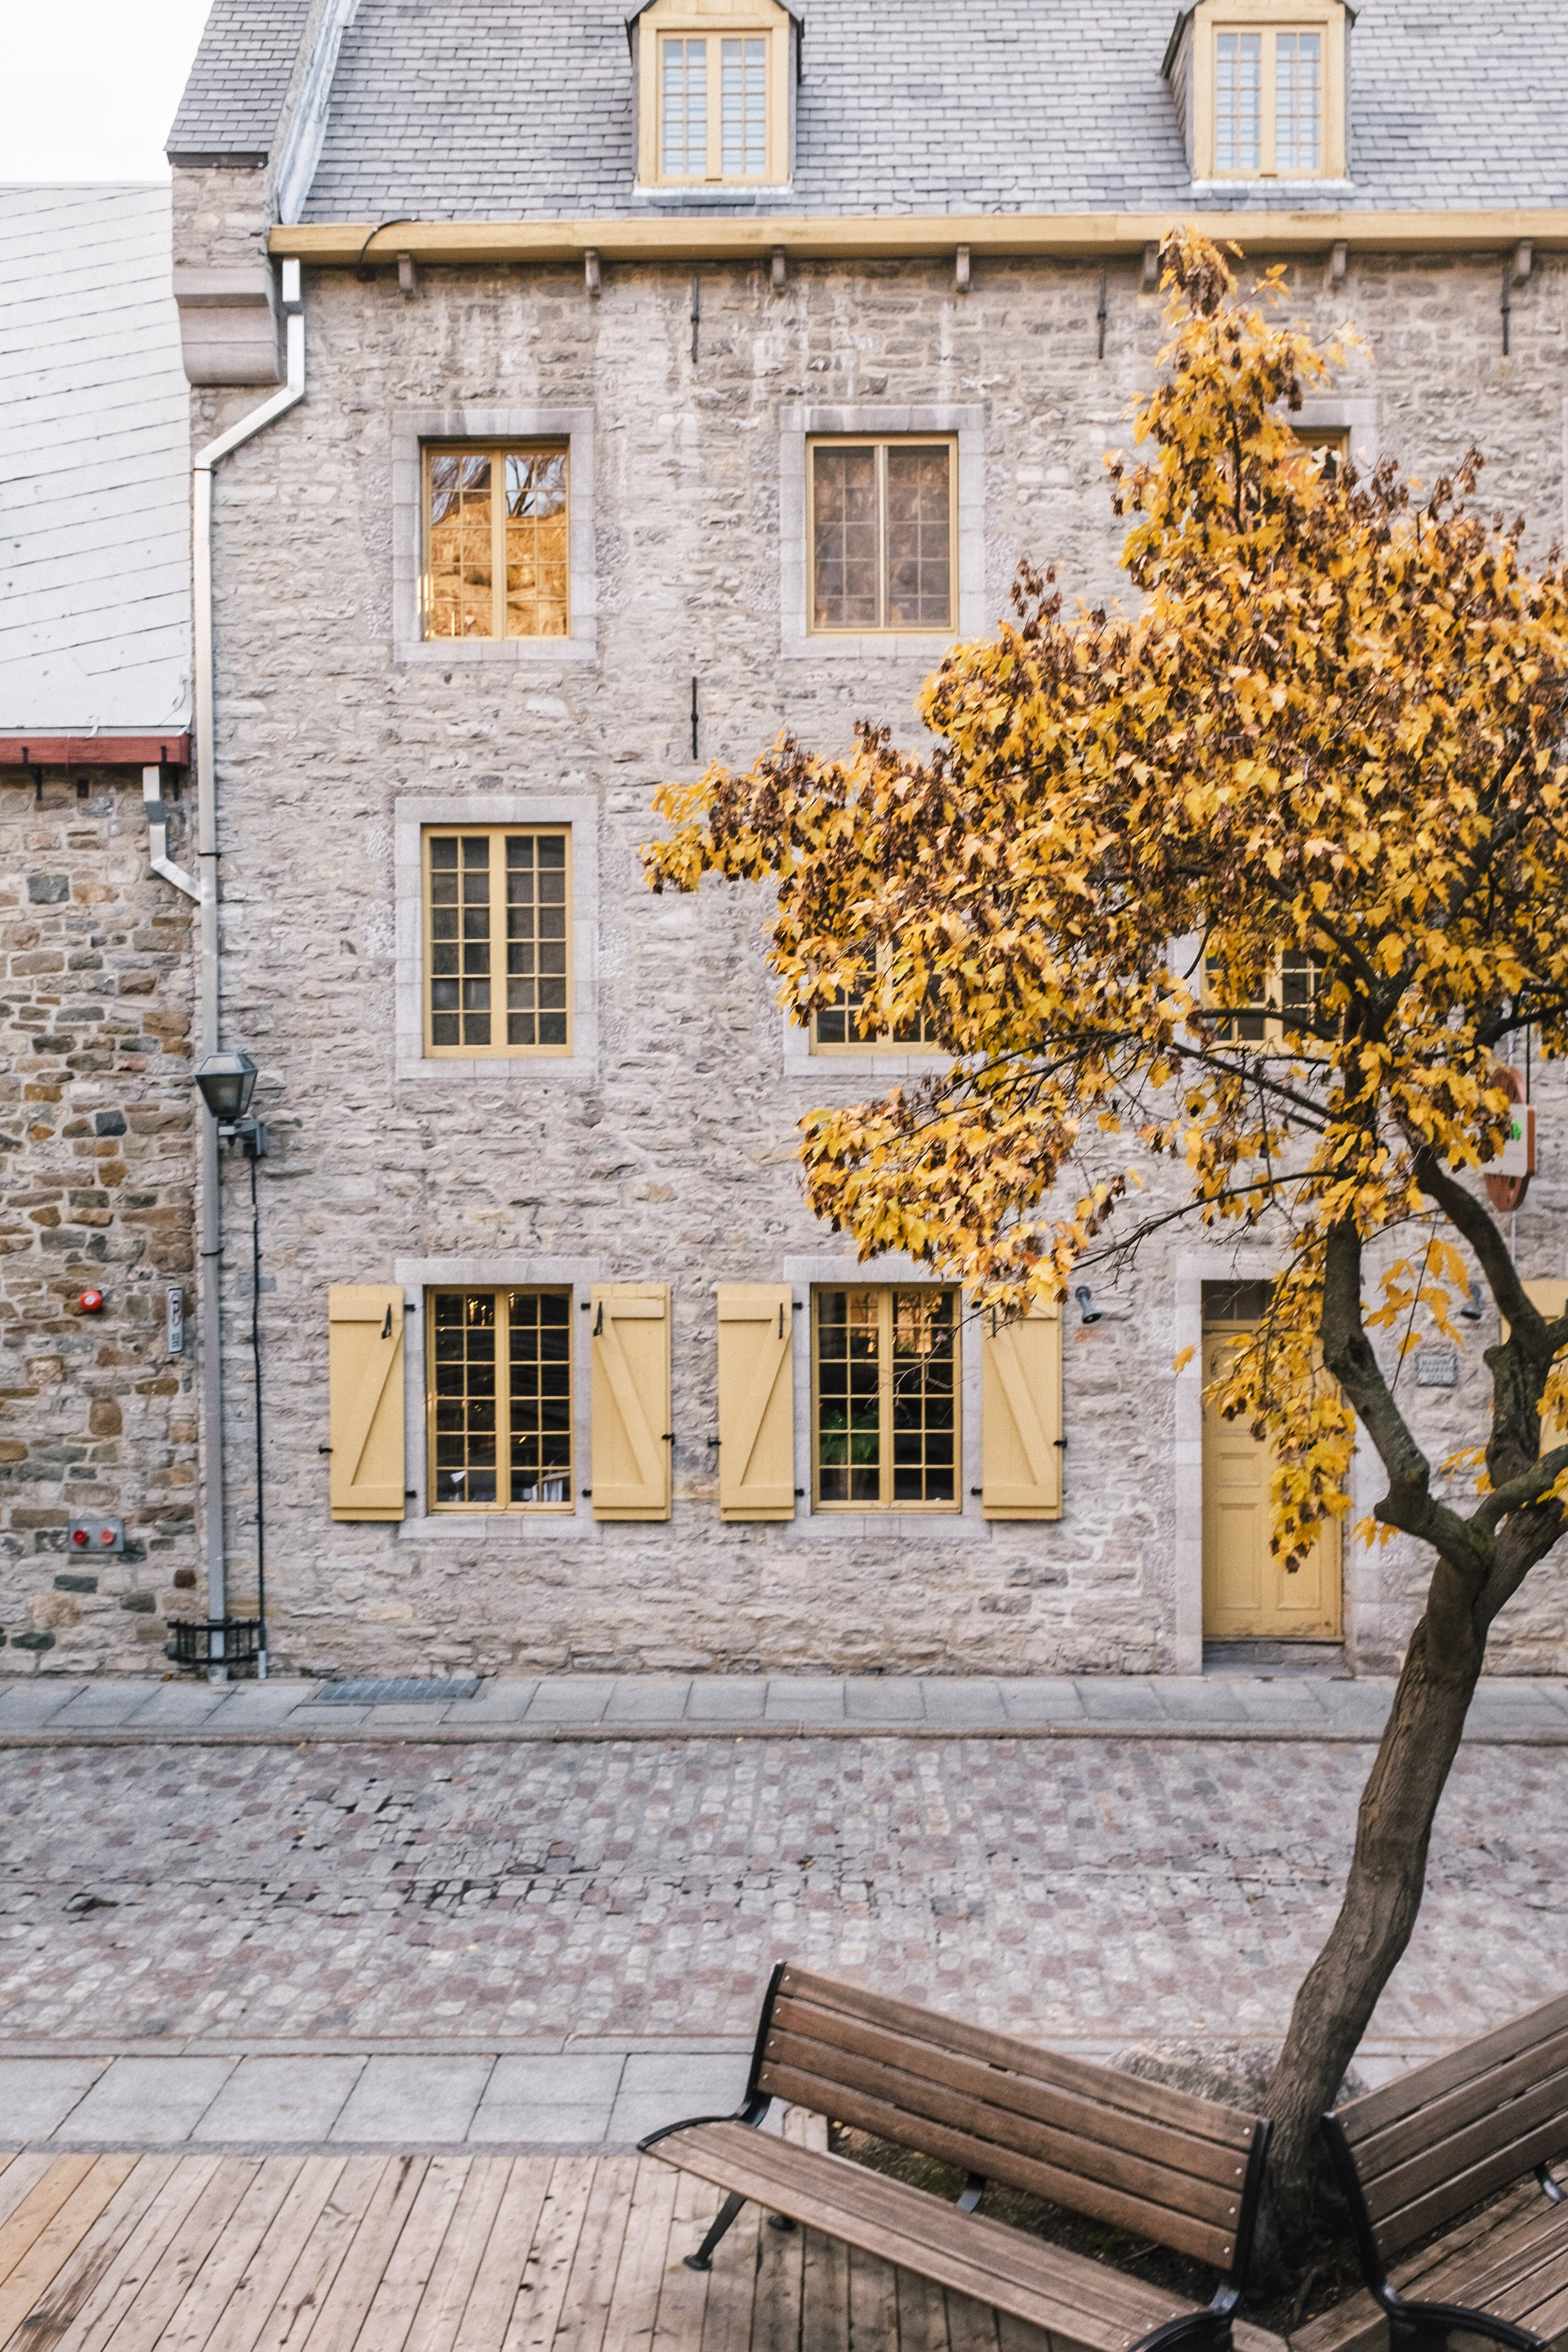 streets of old quebec